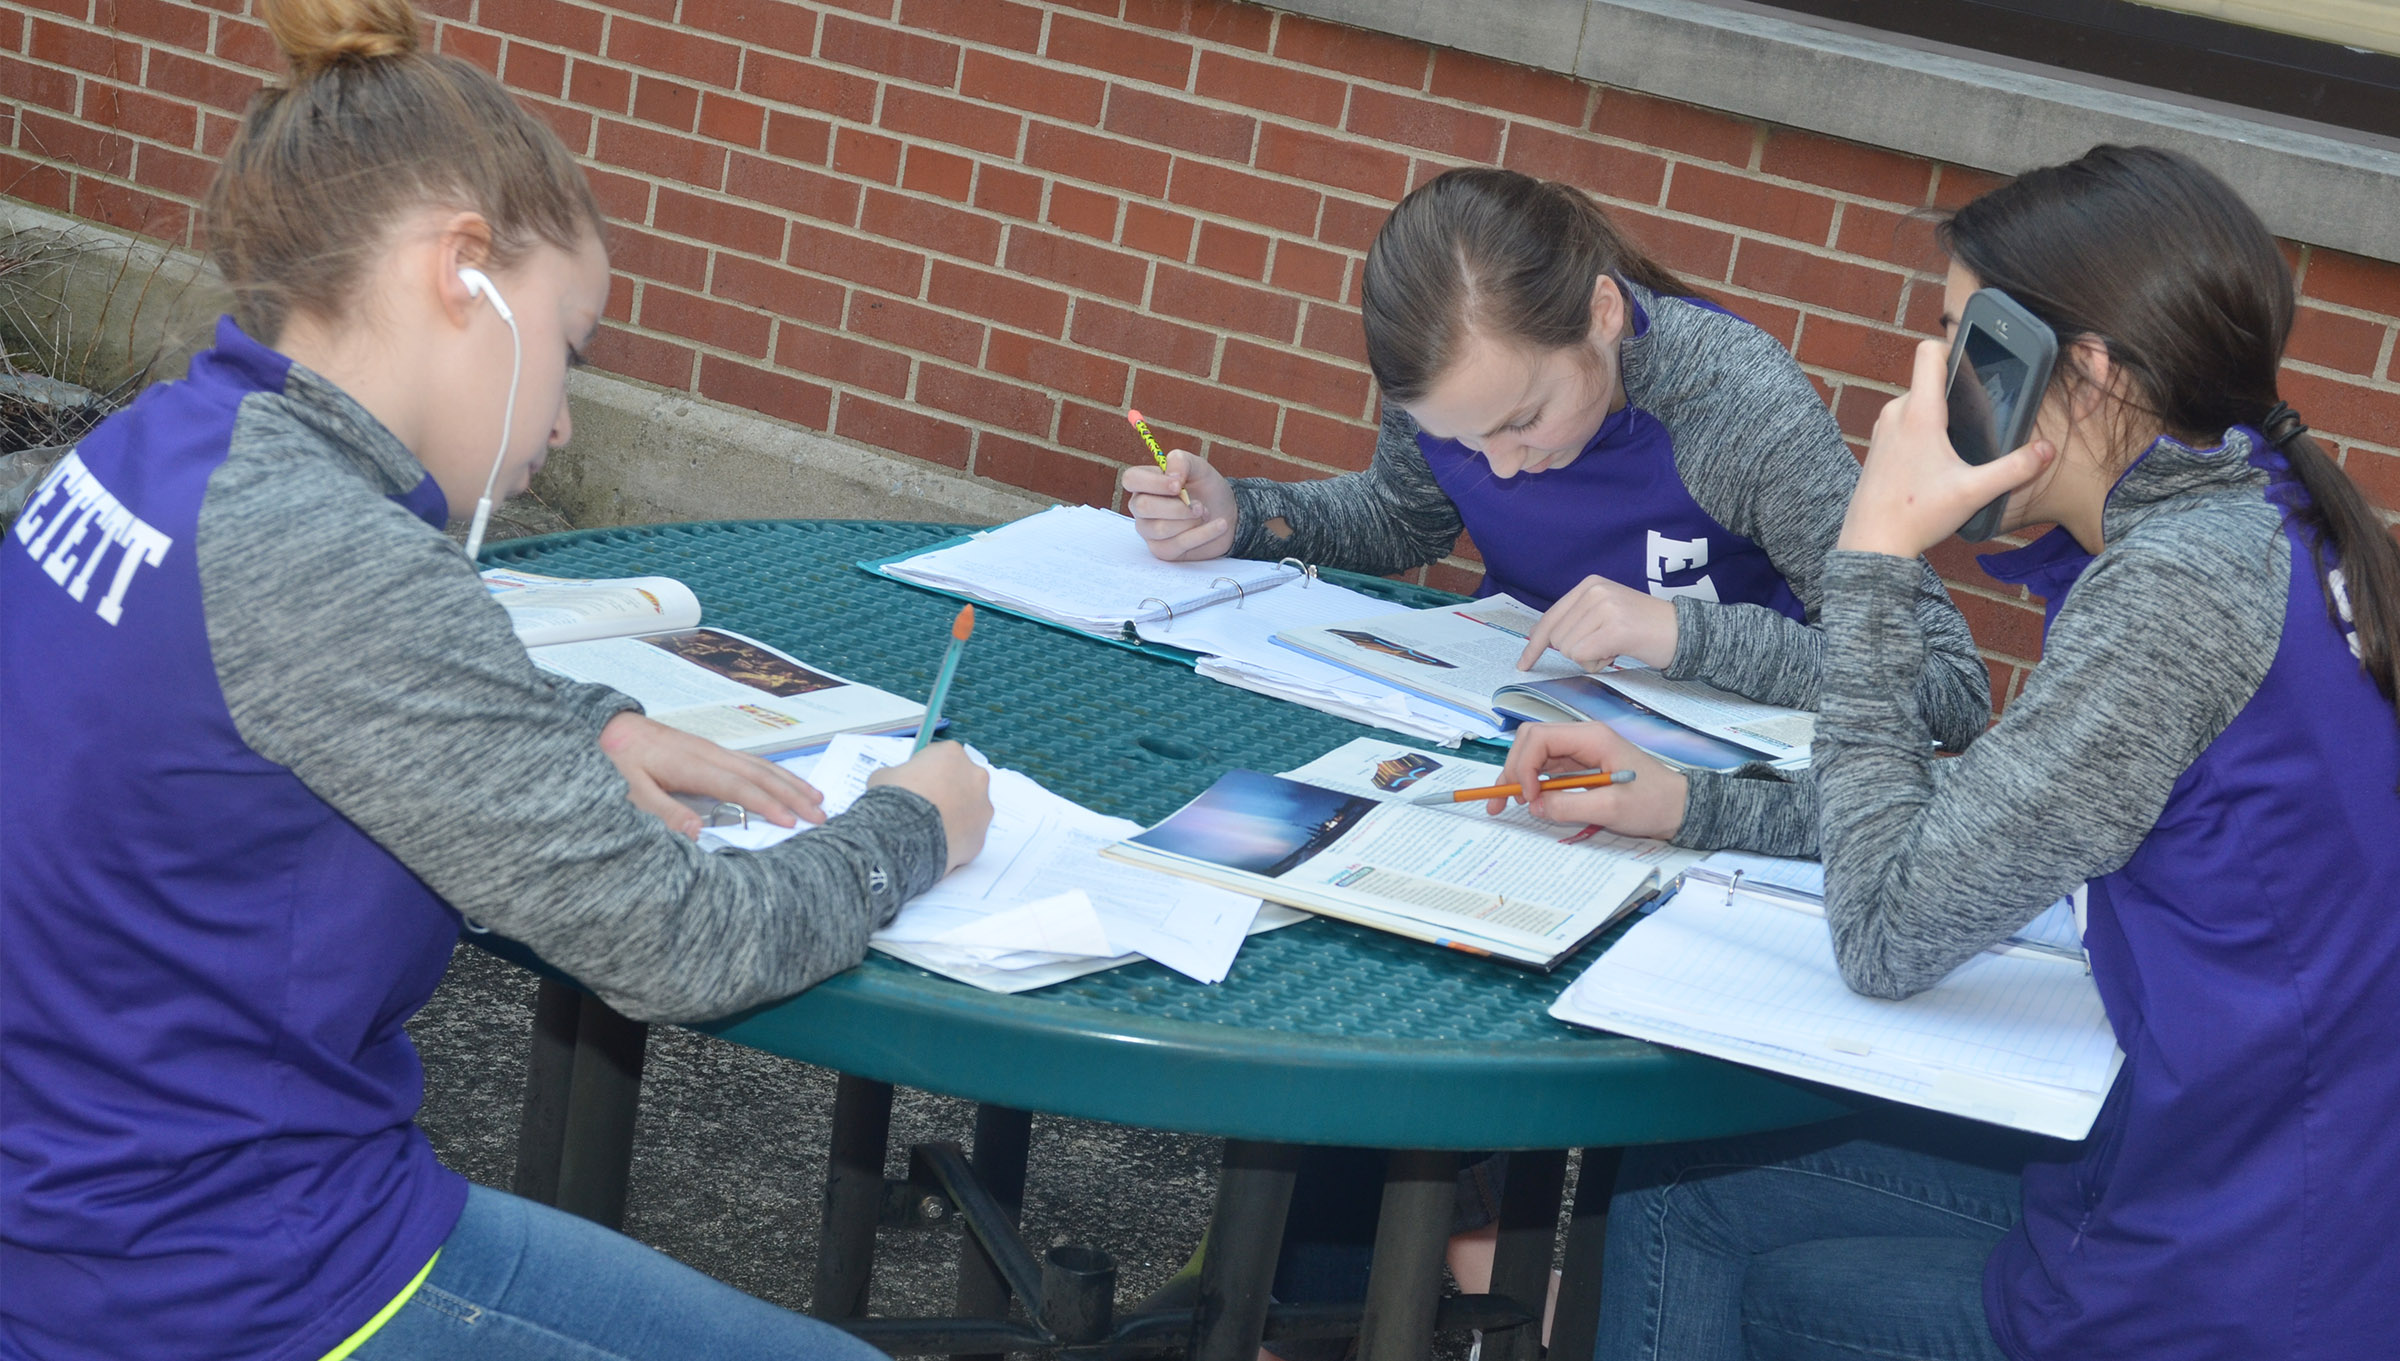 From left, CMS seventh-graders Rylee Petett, Lainey Watson and Kaylyn Smith study together.